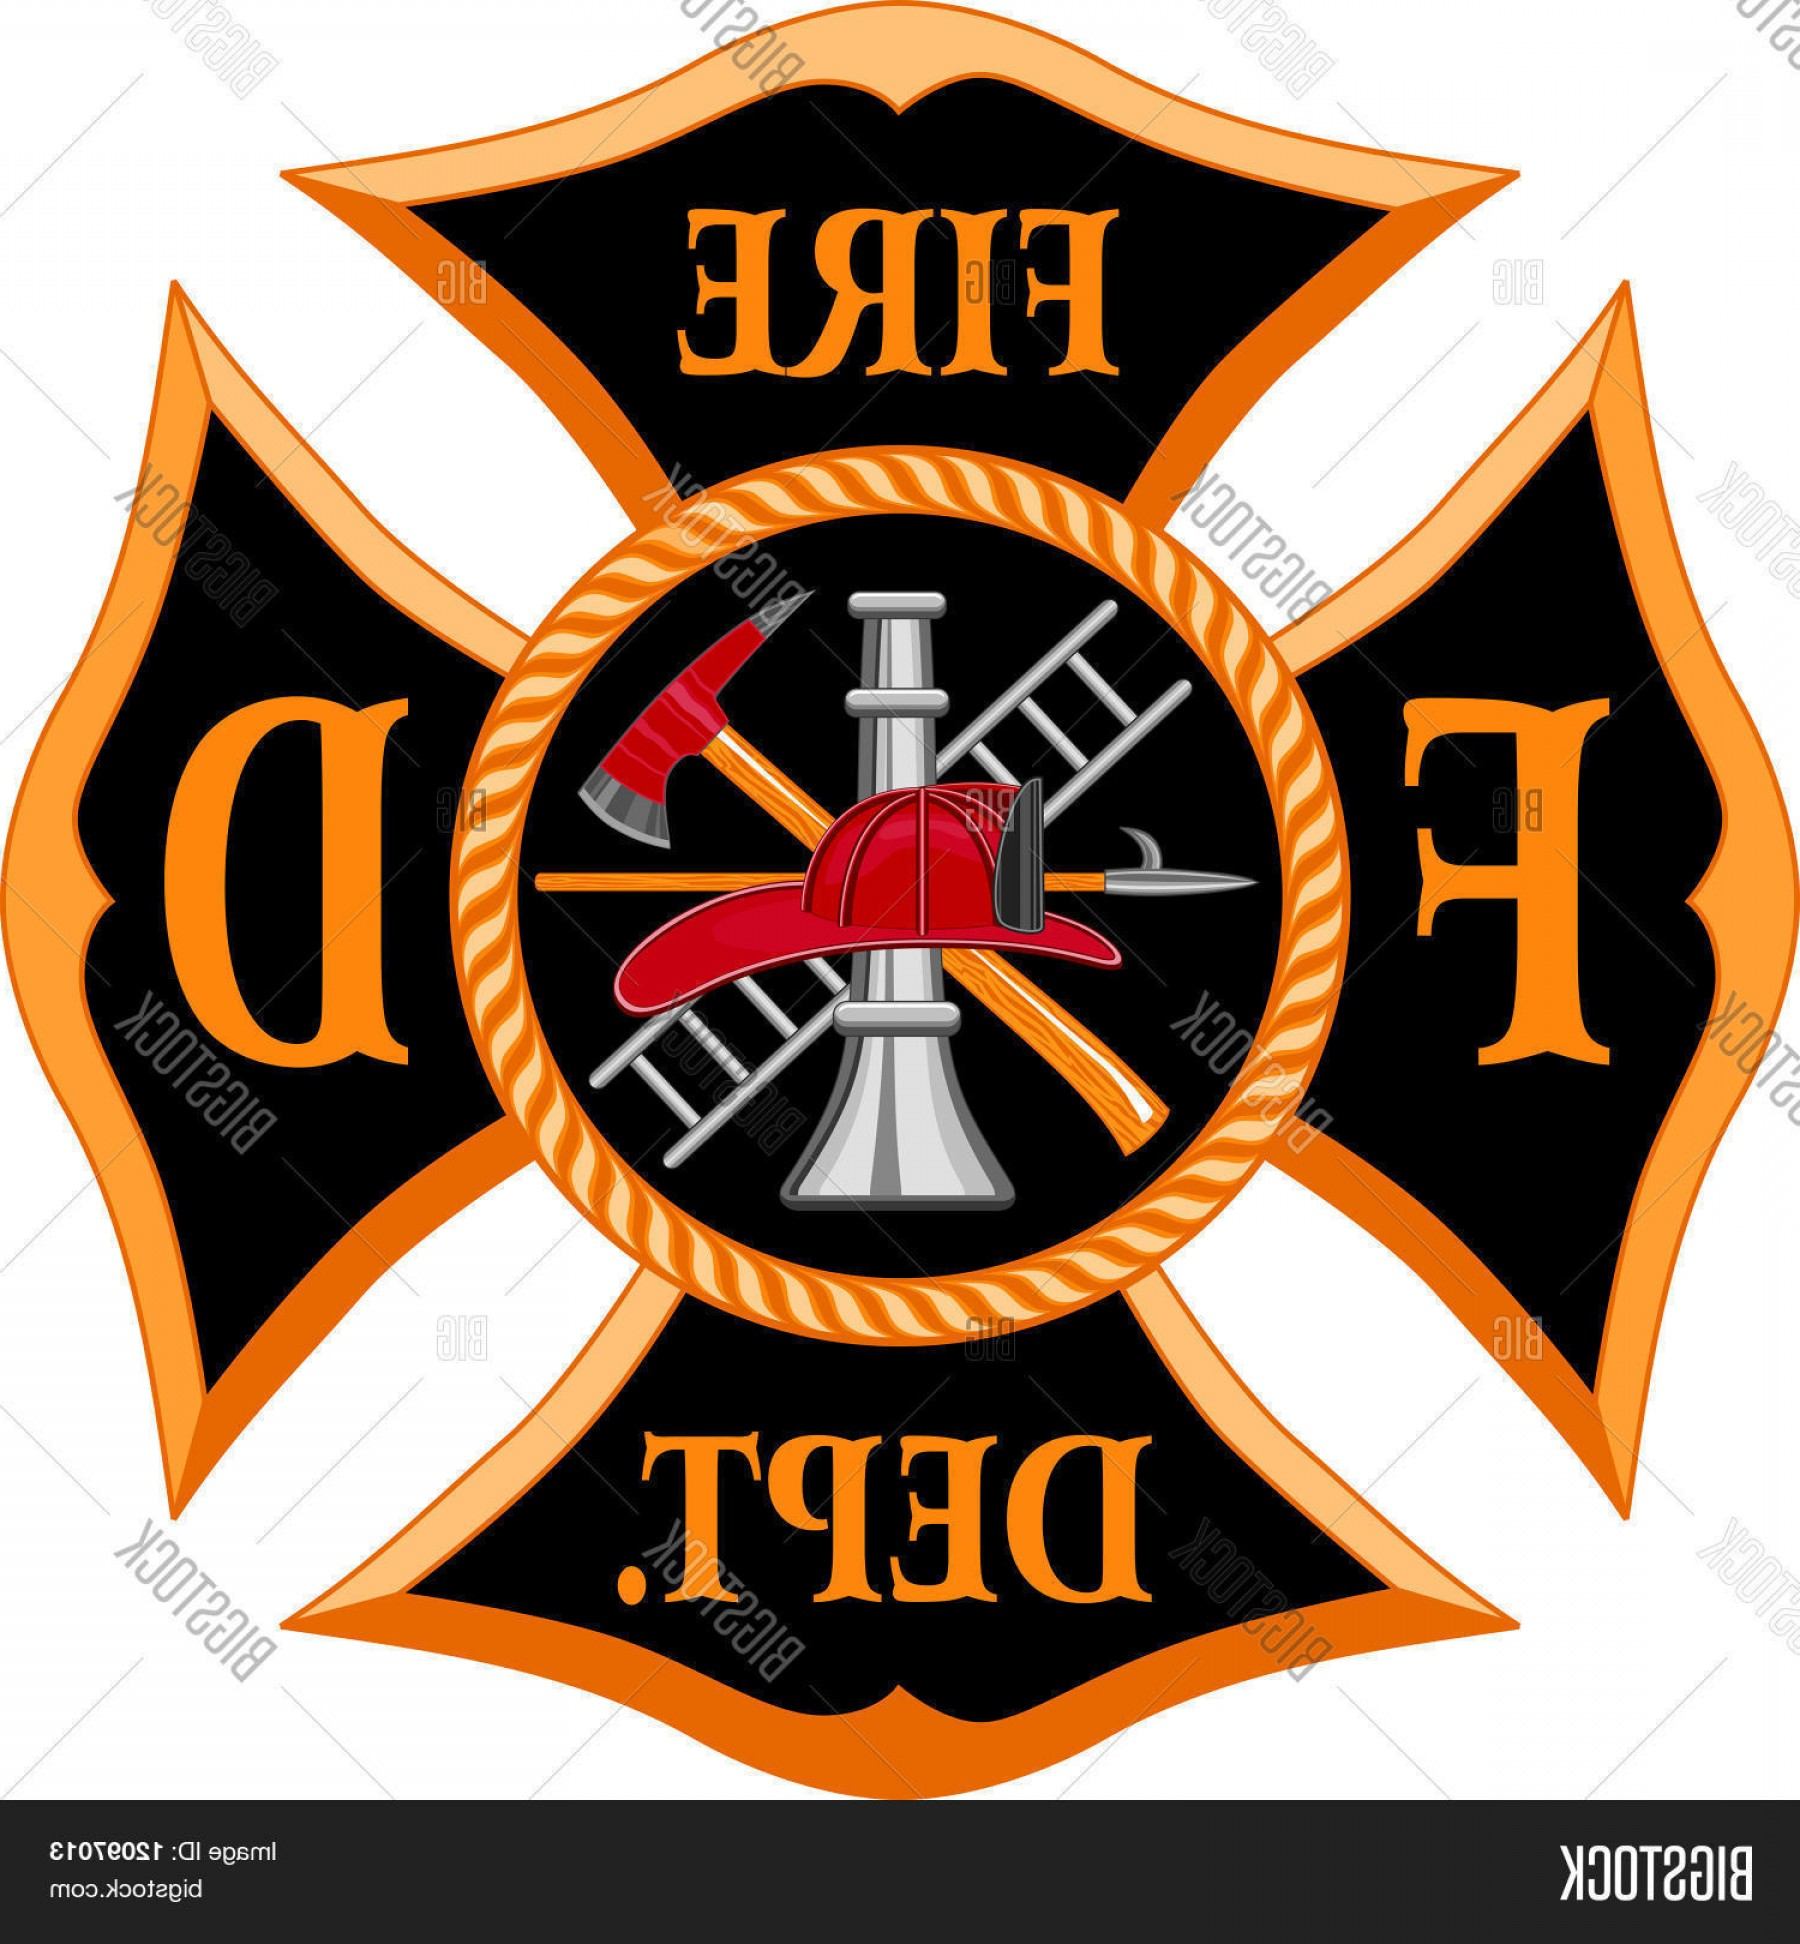 Fire Maltese Vector: Stock Vector Fire Department Maltese Cross Symbol